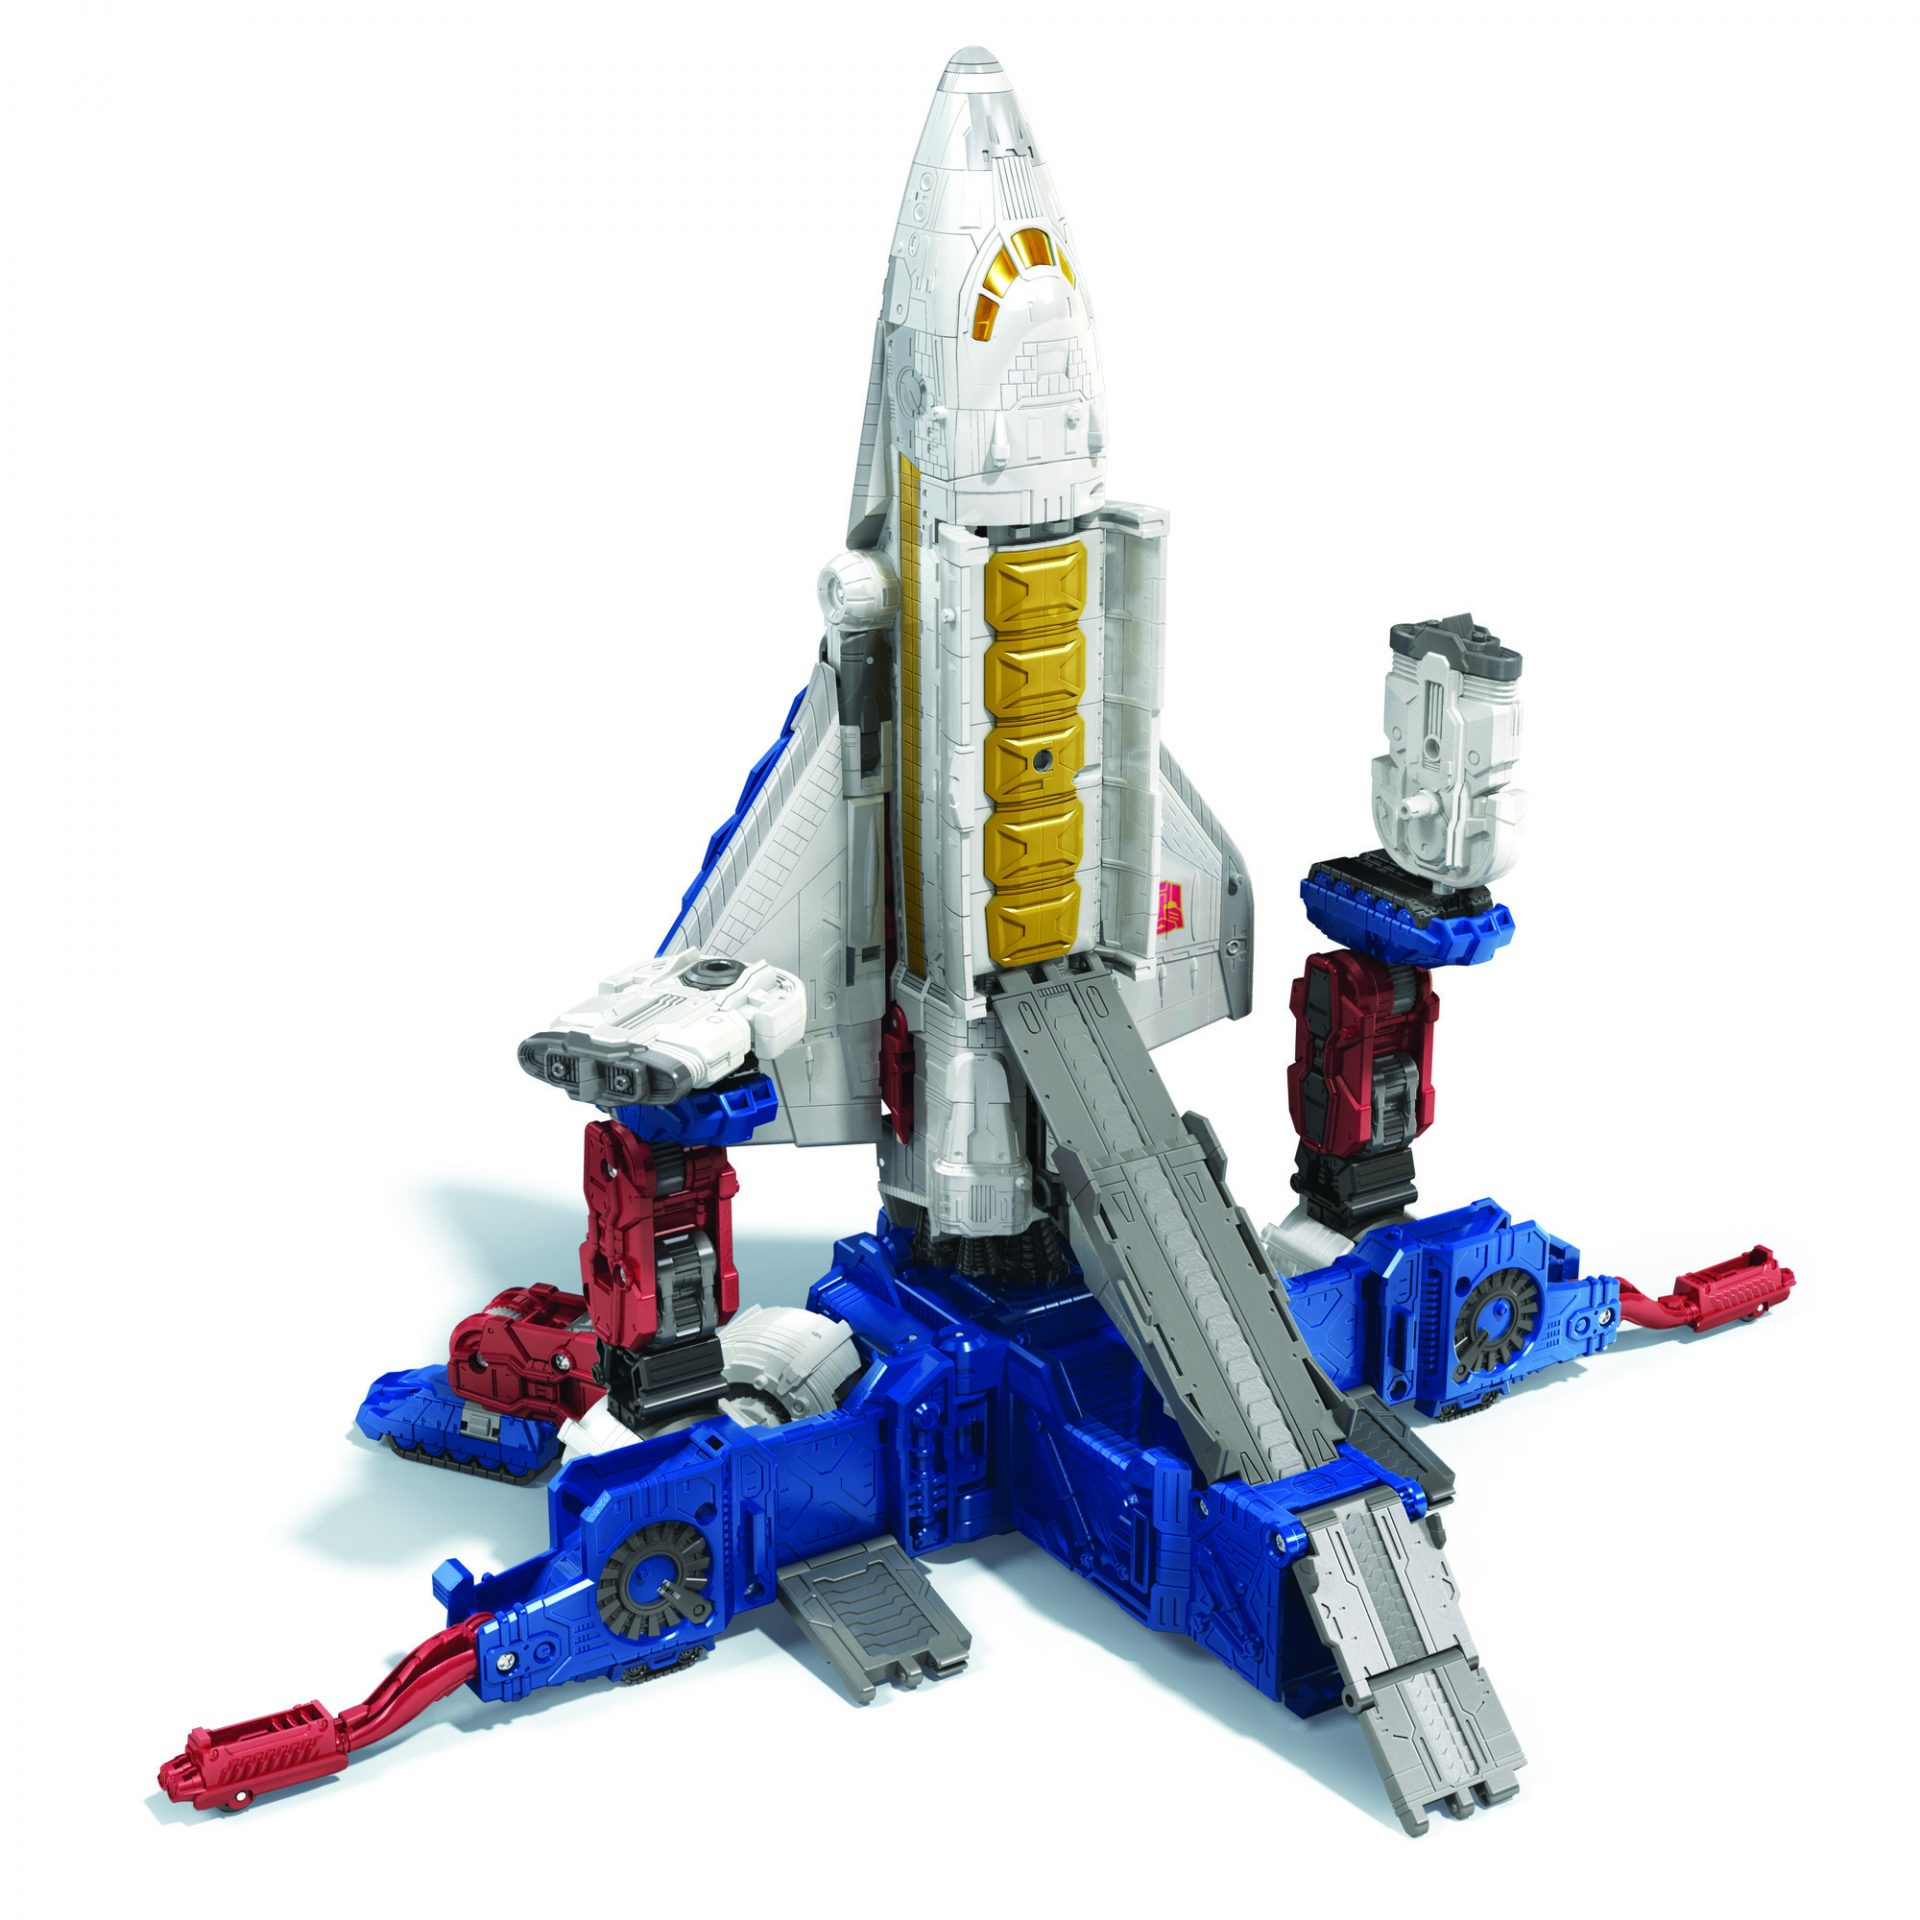 Hasbro Unleashes Tons of New Toys in 2020_76